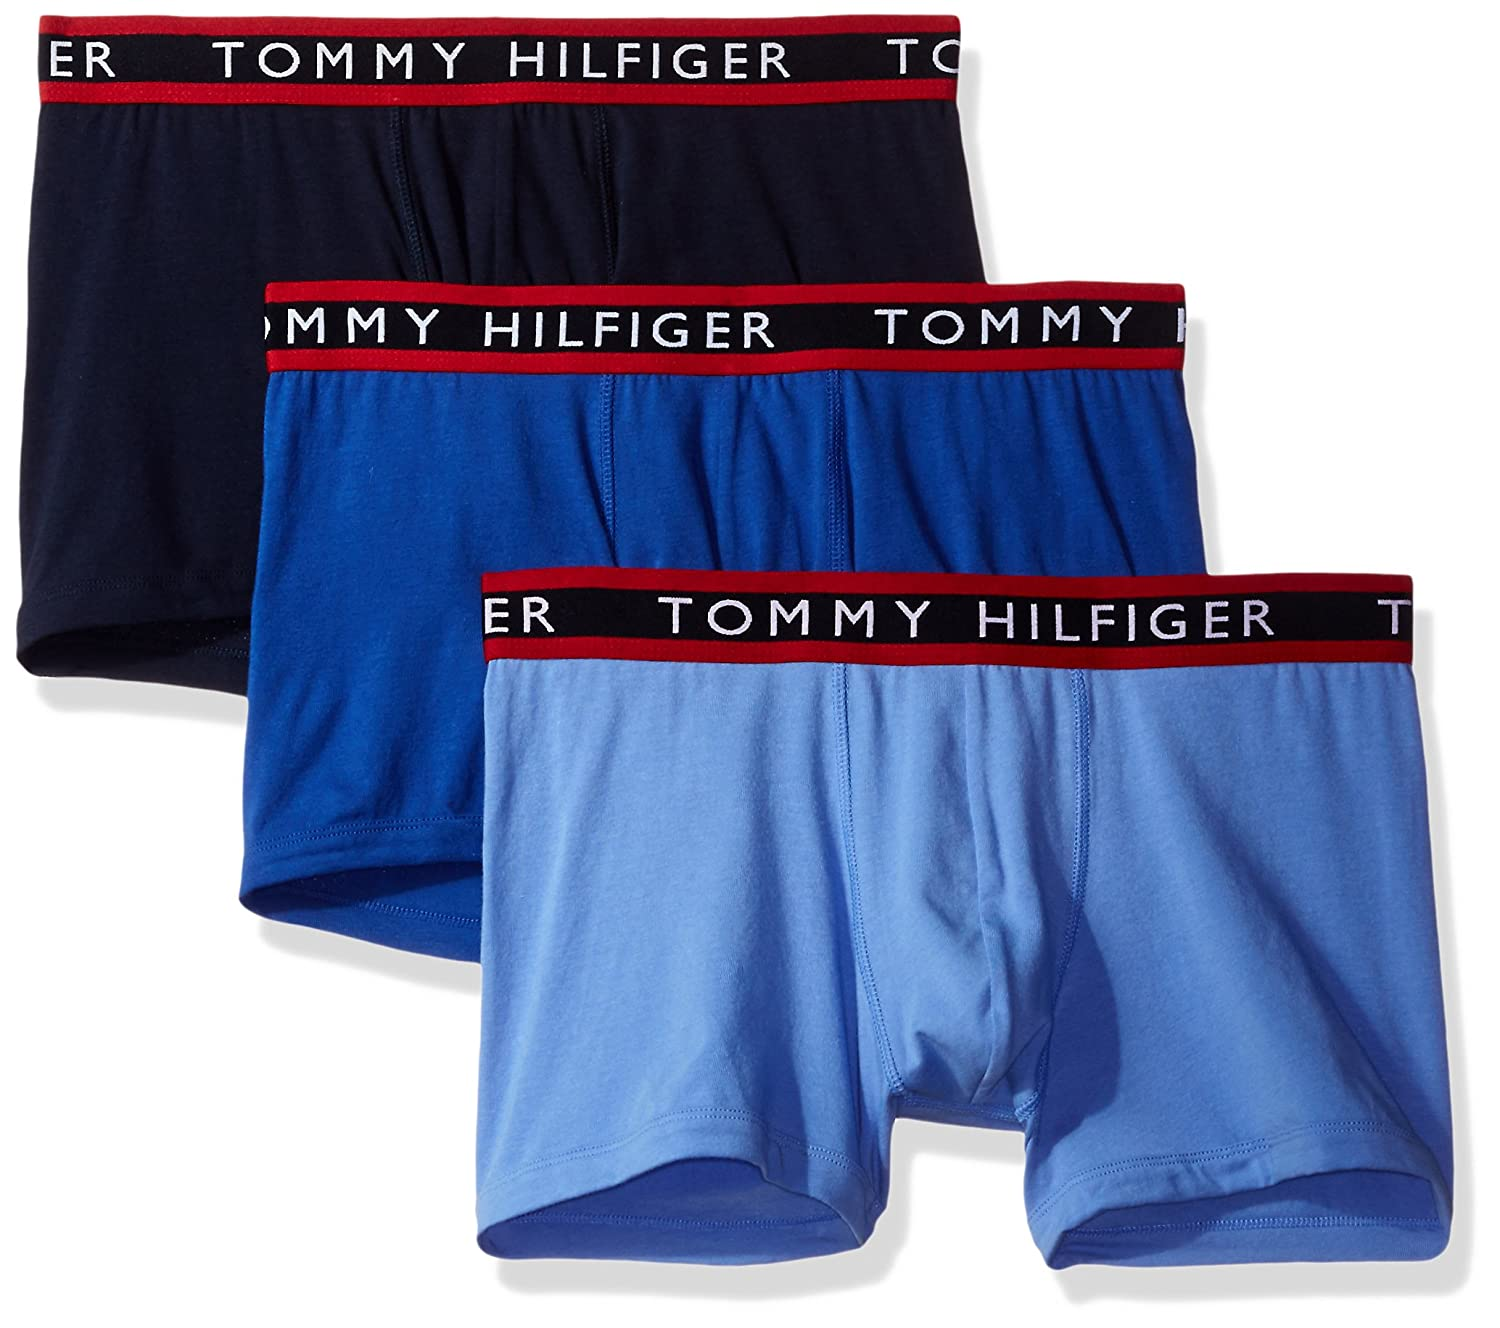 TOMMY HILFIGER (トミーヒルフィガー) ボクサーパンツ 3枚セット 09T0963 B01NAP6YQV Large|Persian Blue Persian Blue Large